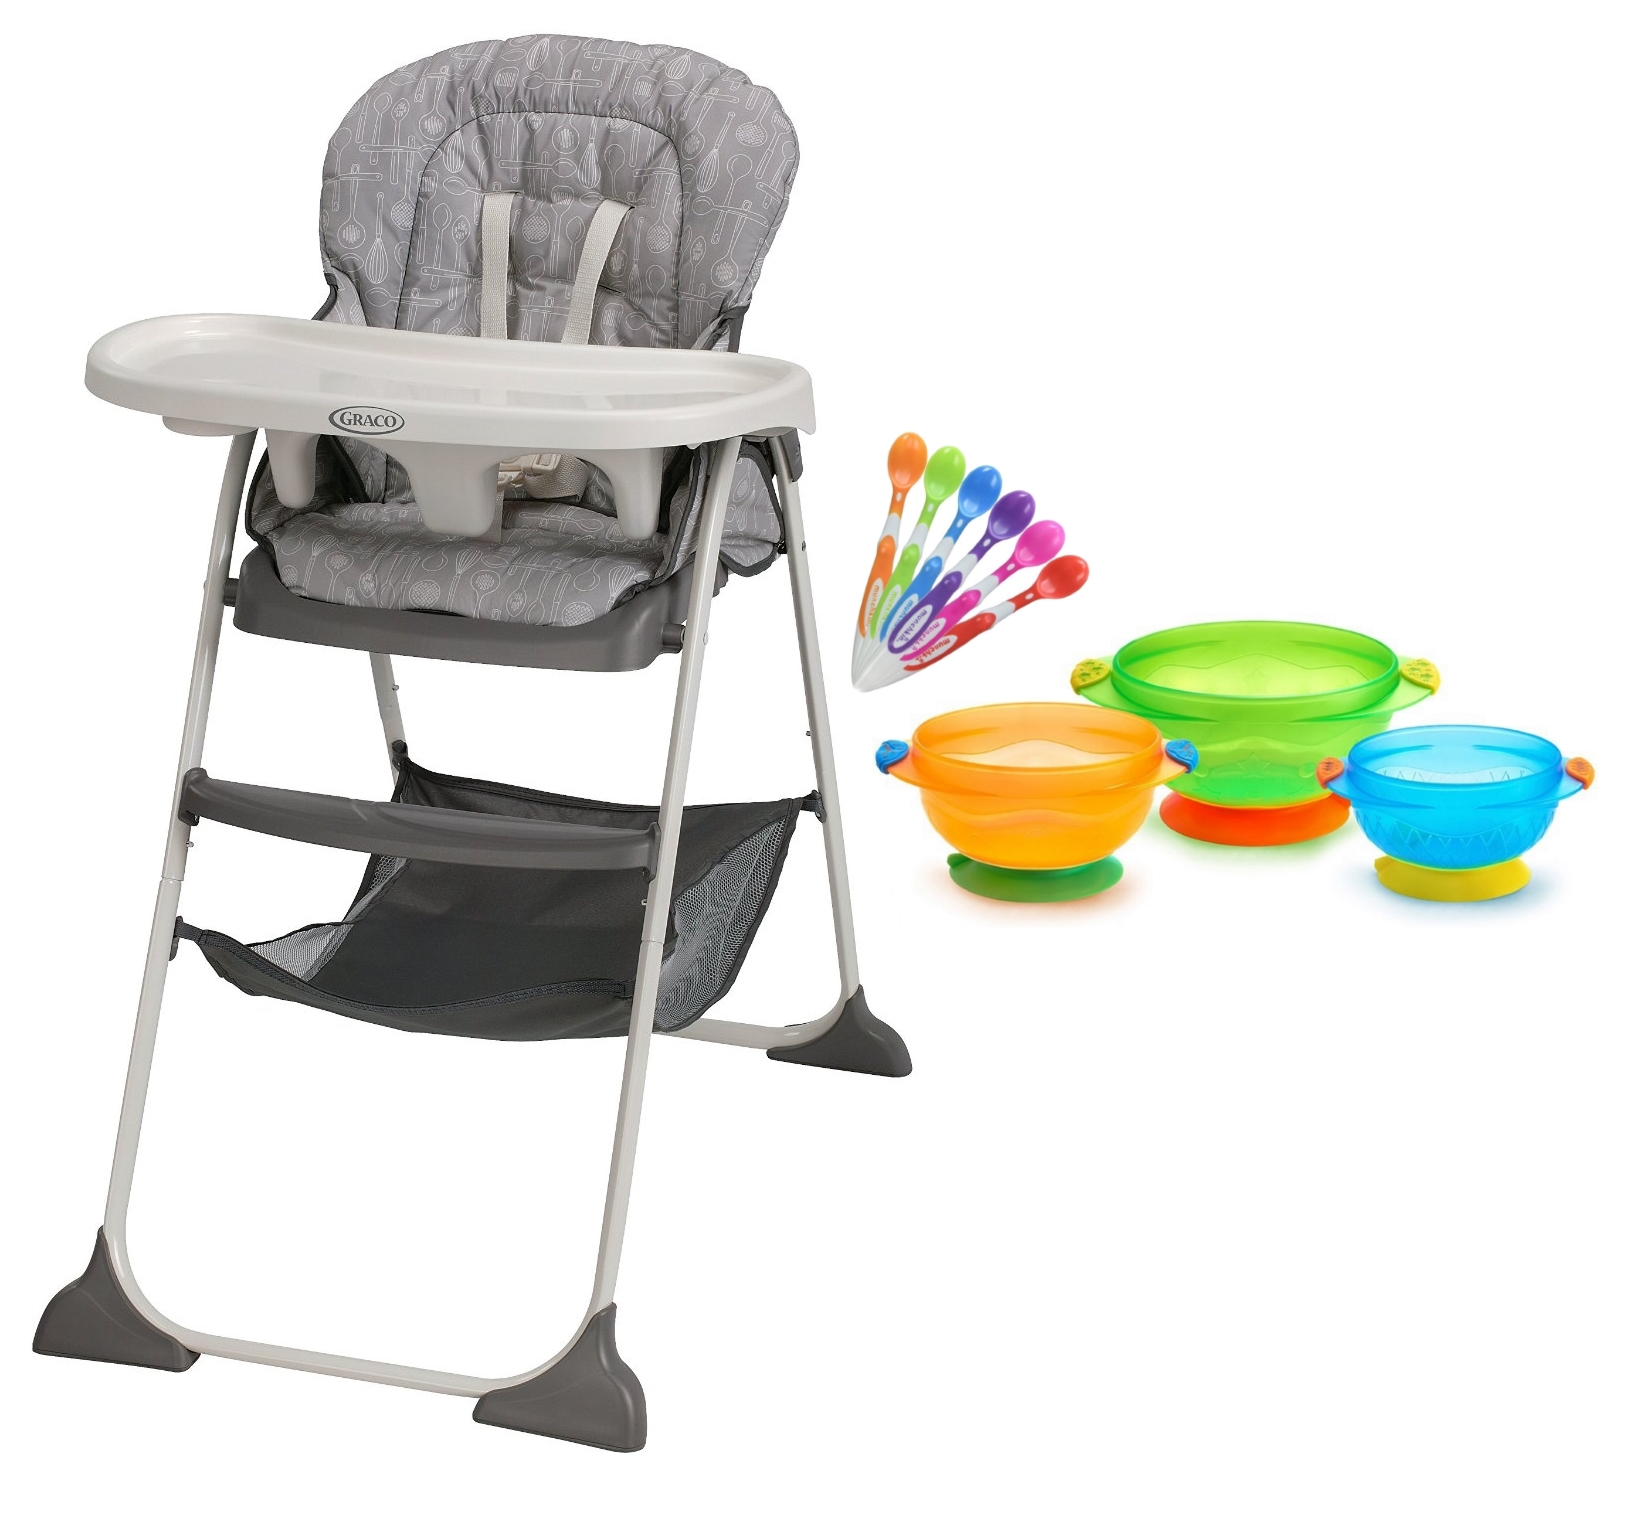 Graco Slim Snacker High Chair with Infant Spoons & Suction Feeding Bowls